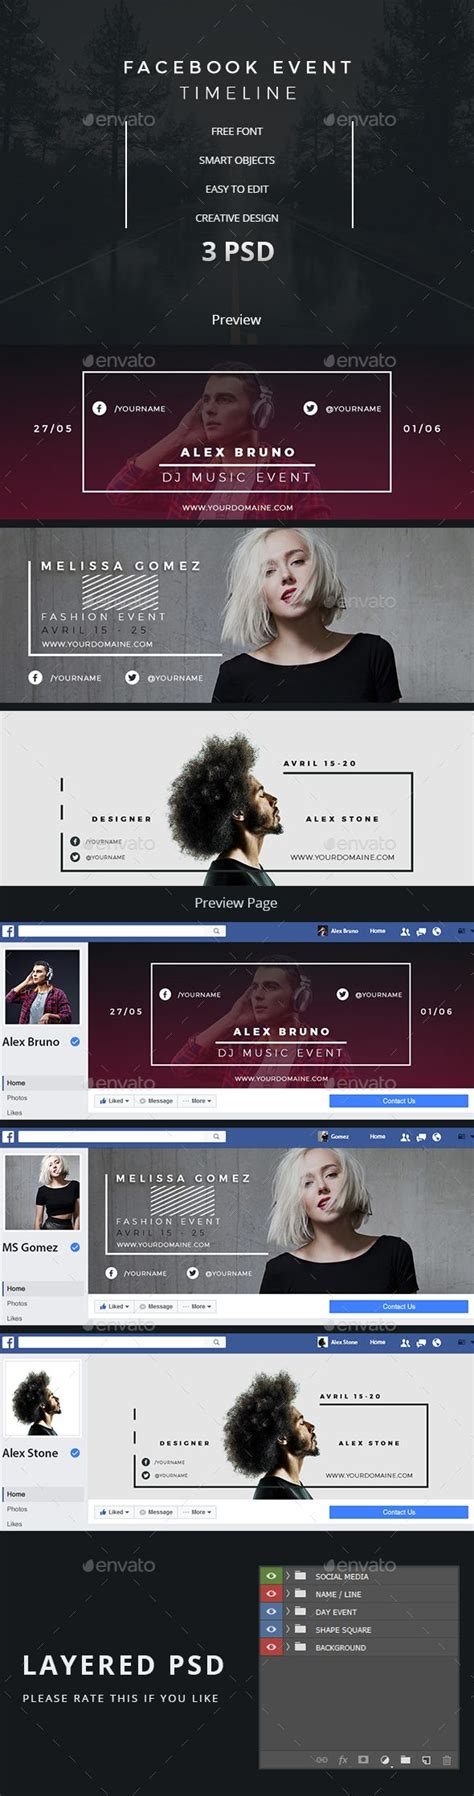 25 best ideas about facebook cover photo template on